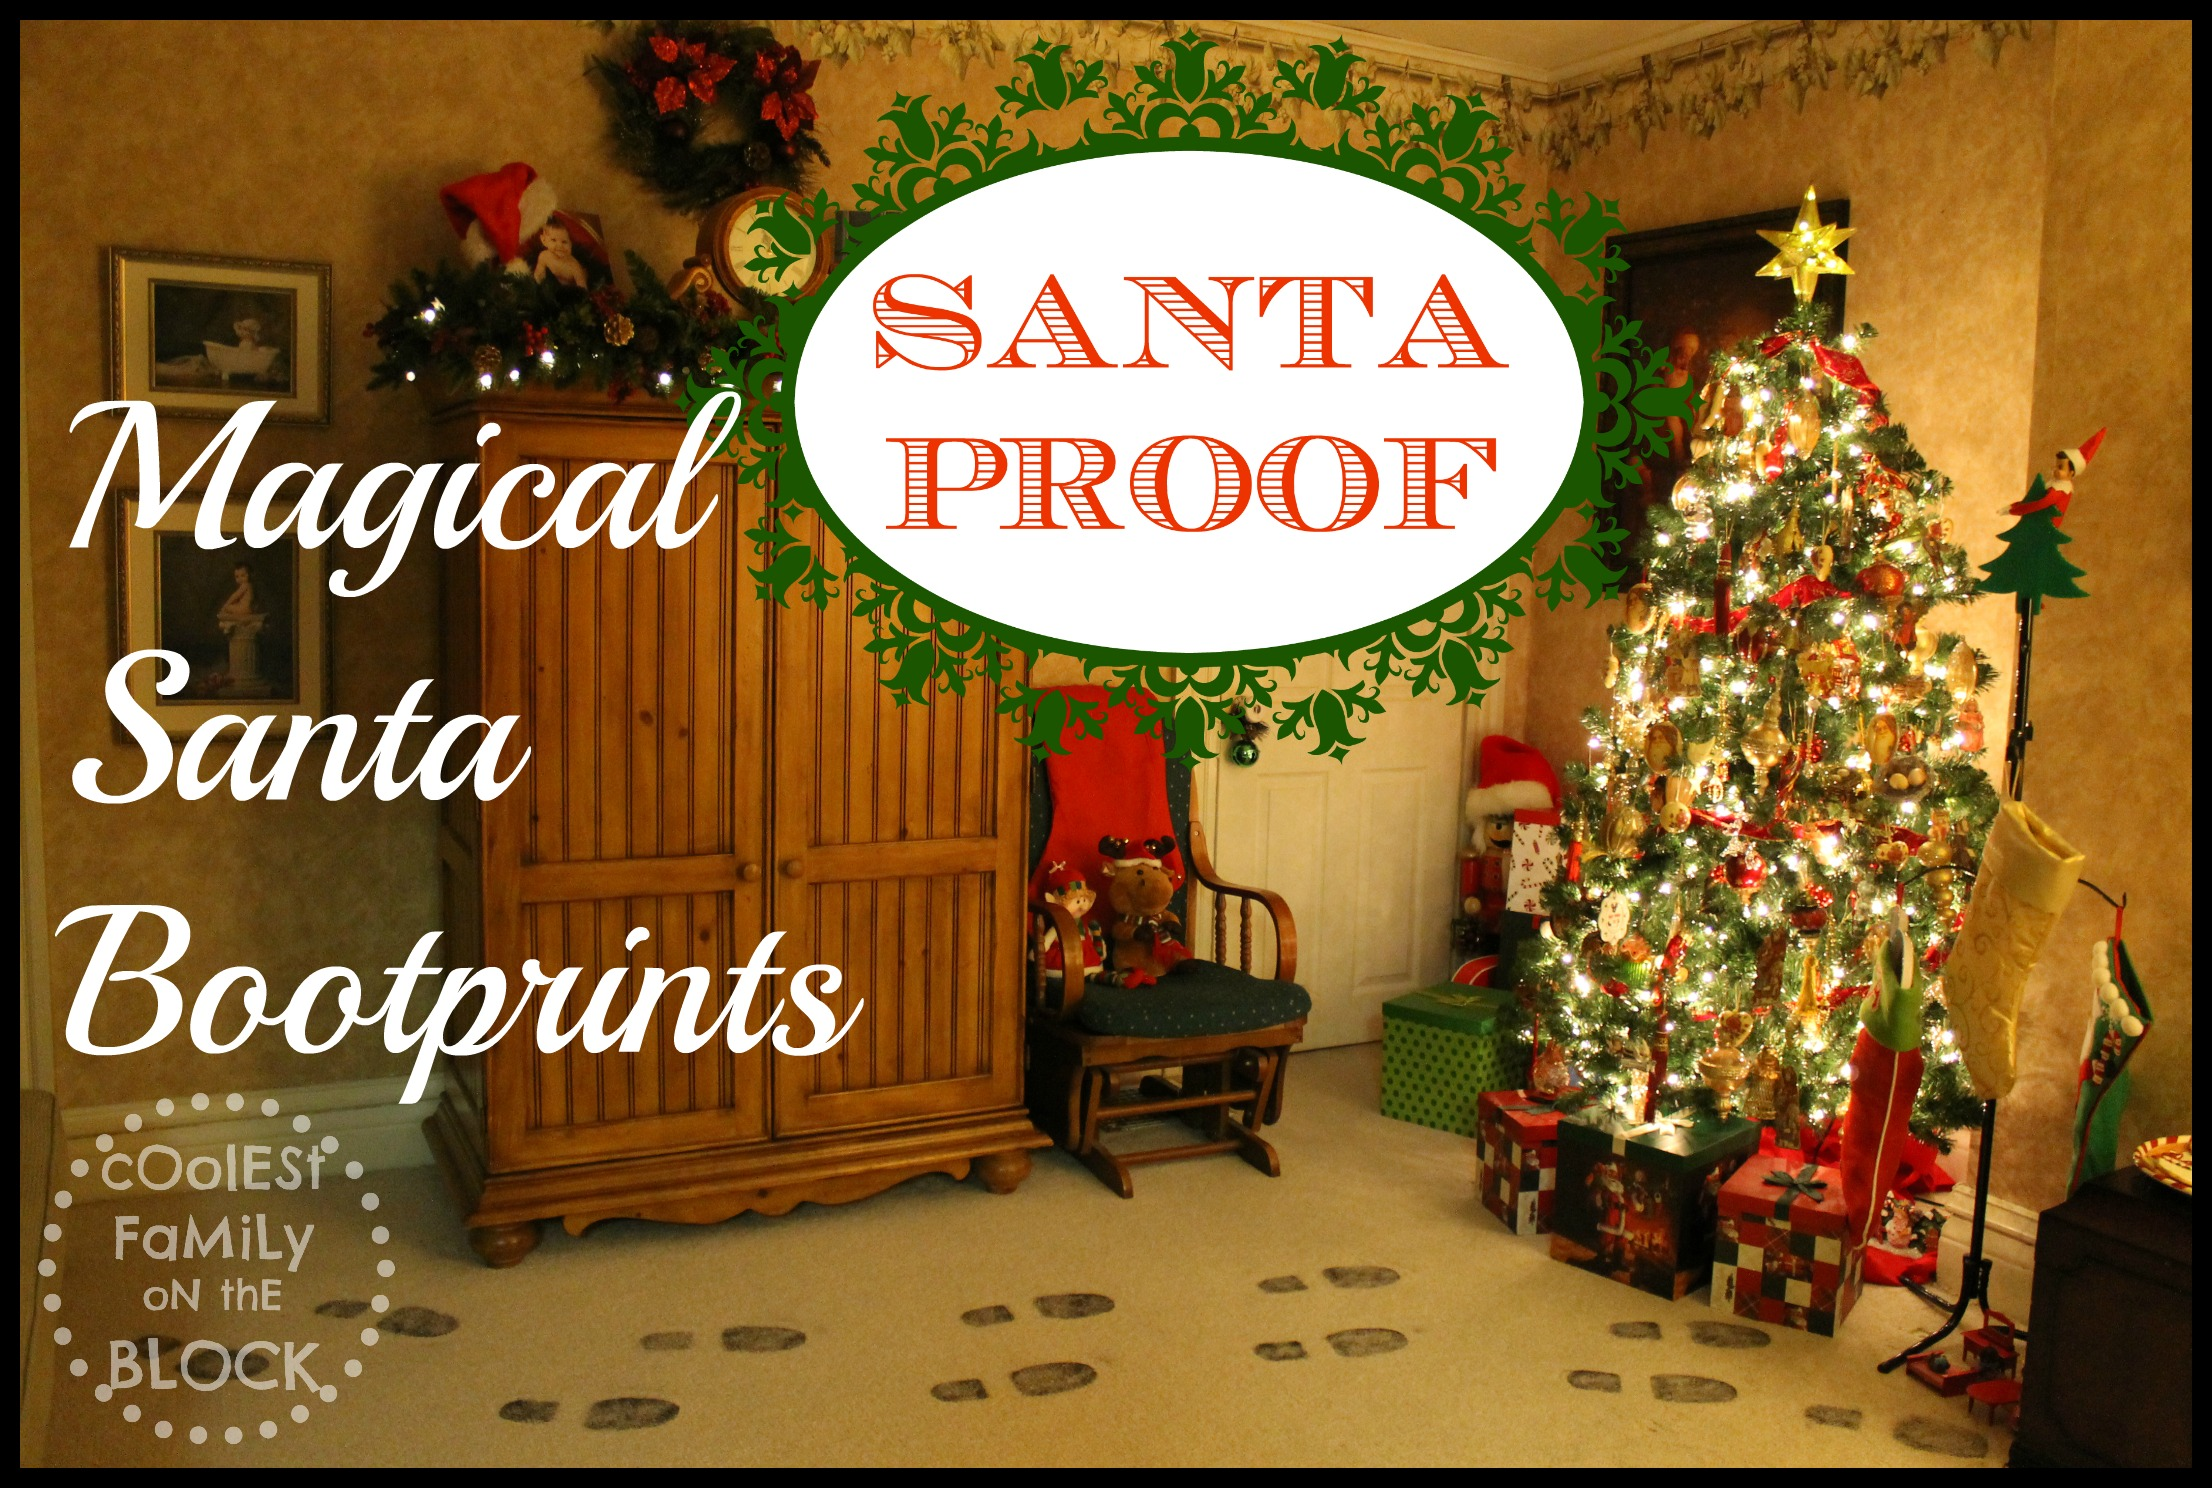 Santa Proof Magical Santa Bootprints Coolest Family On